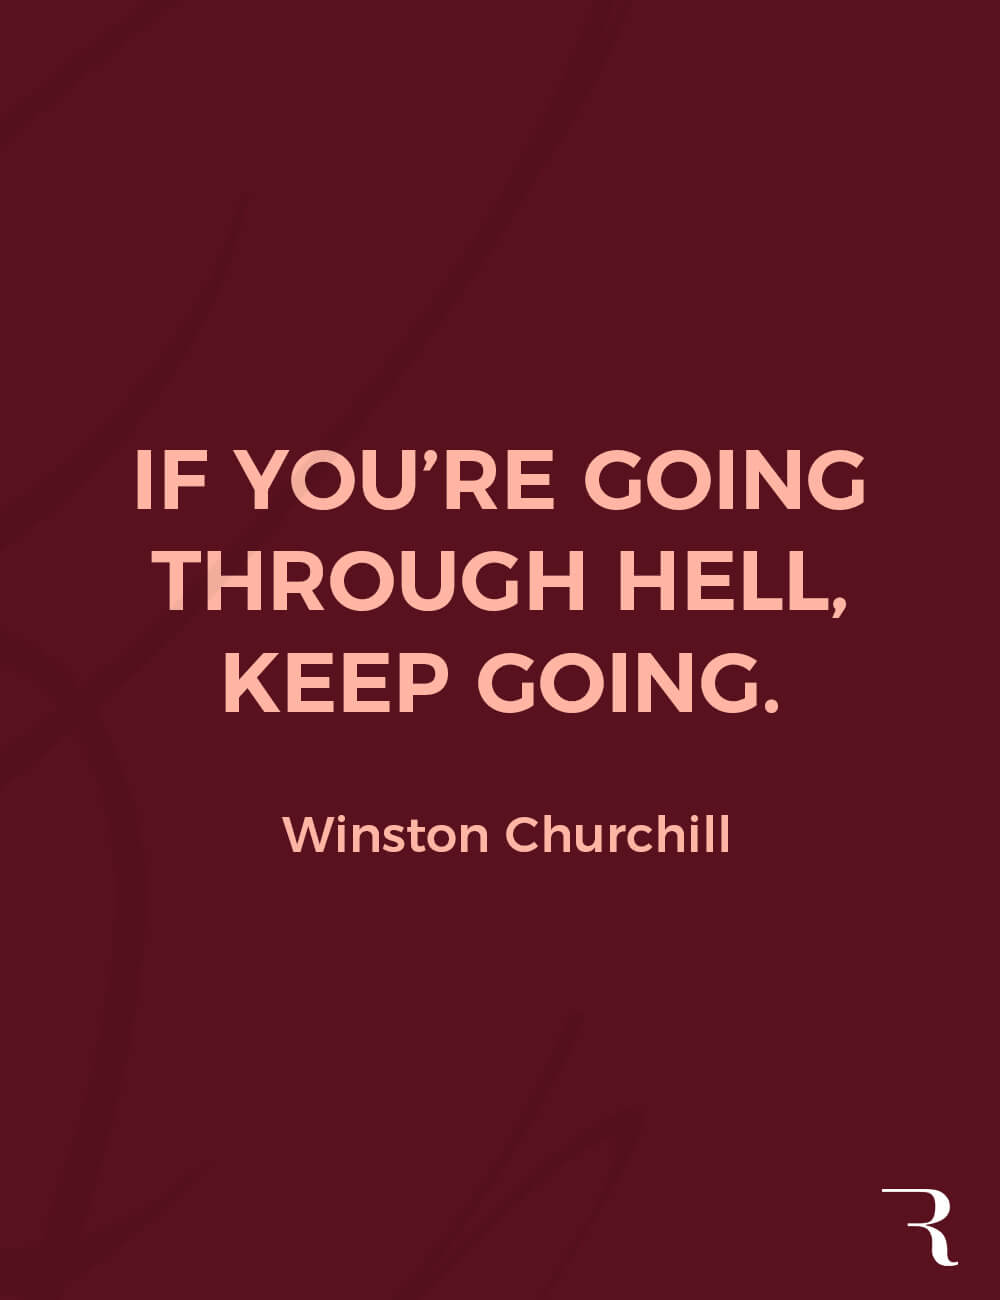 """Motivational Quotes: """"If you're going through hell, keep going."""" 112 Motivational Quotes to Be a Better Entrepreneur"""